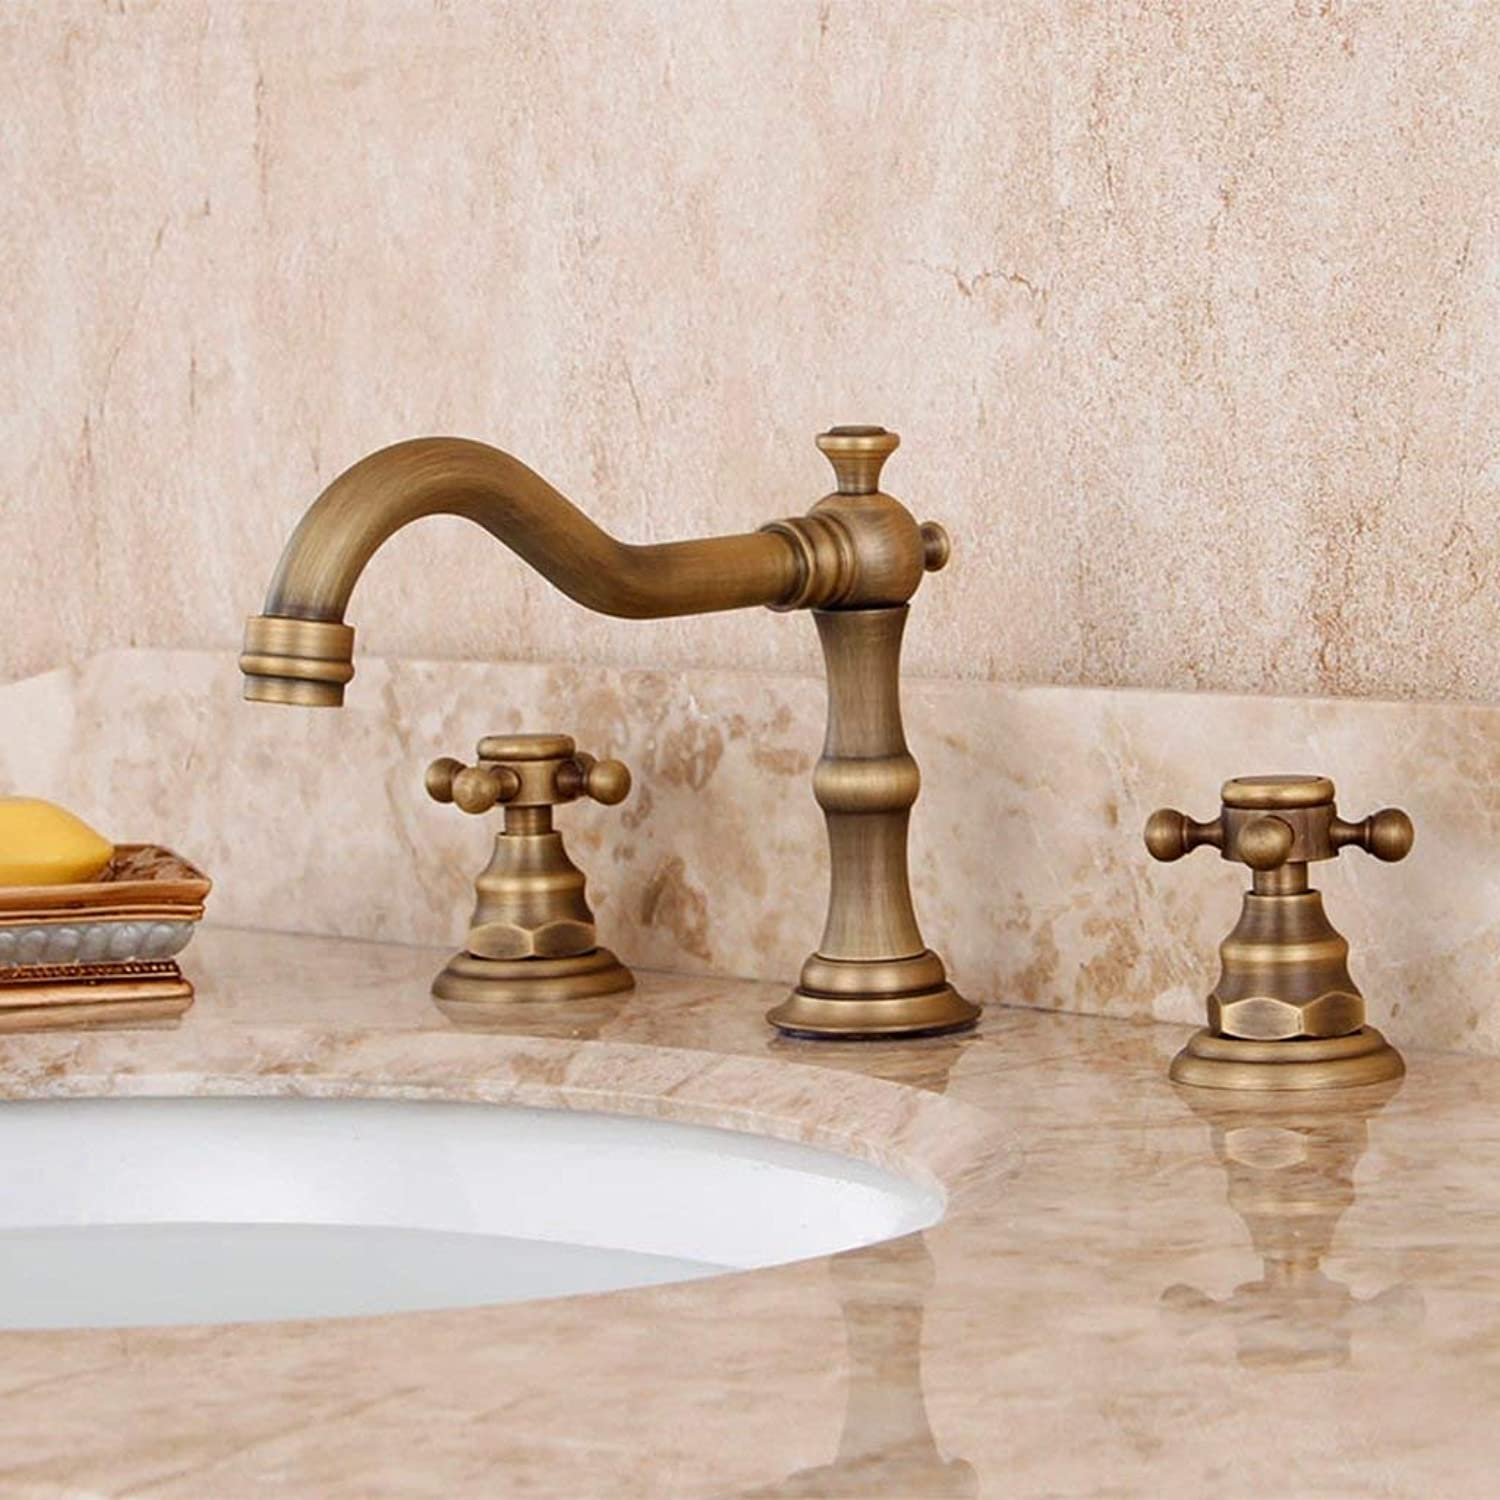 DYR Faucet Faucet European Antique Double to Three Hole Faucet All Copper Retro Hot and Cold Faucet (color  A)